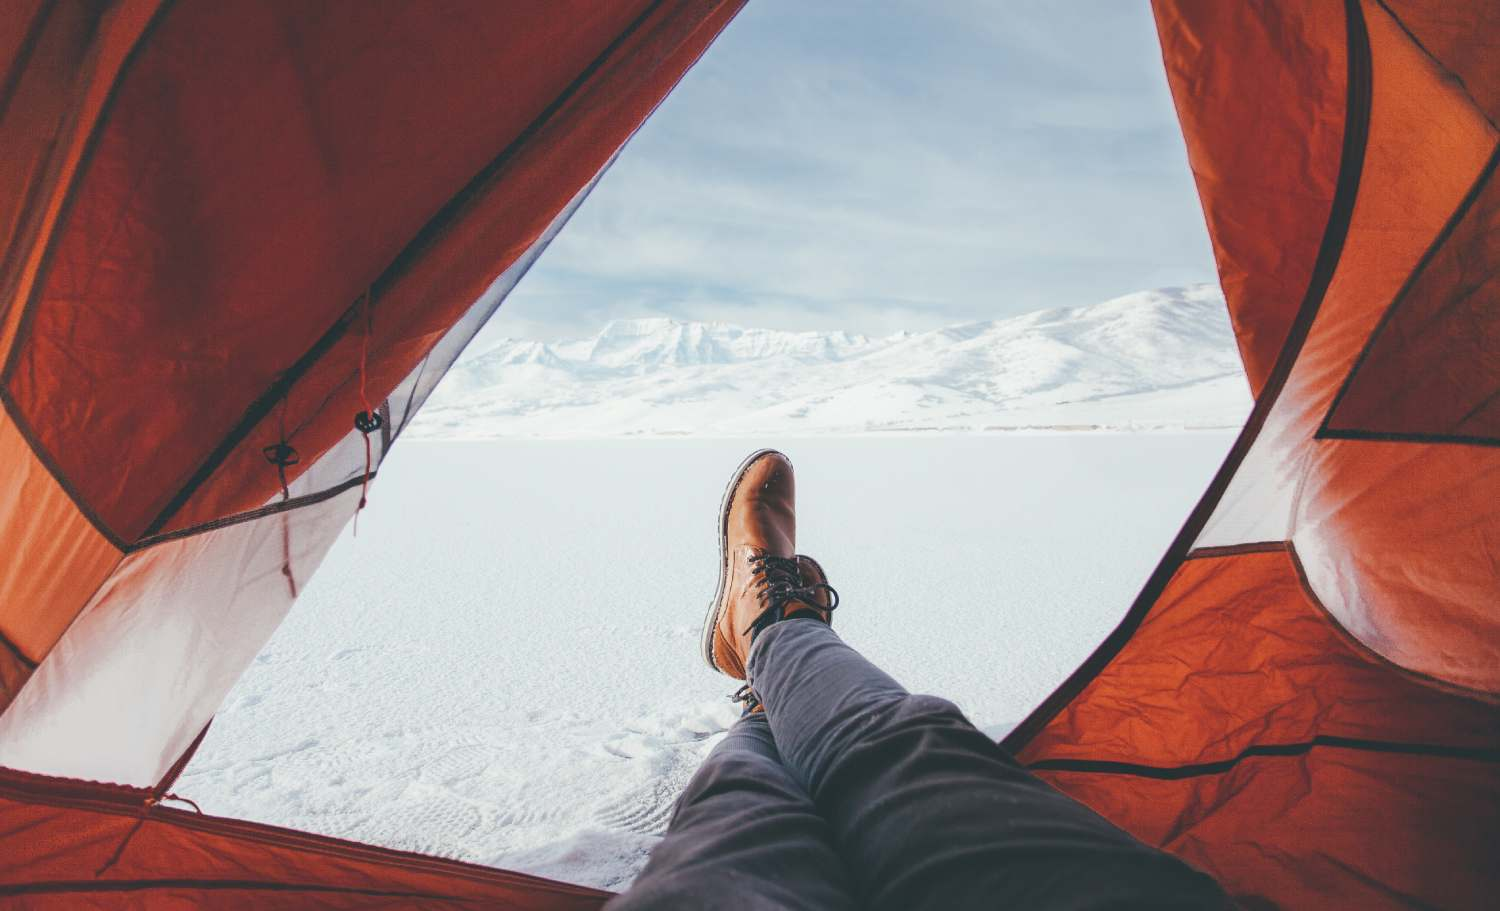 Winter camping is a great way to see more nature and fewer people